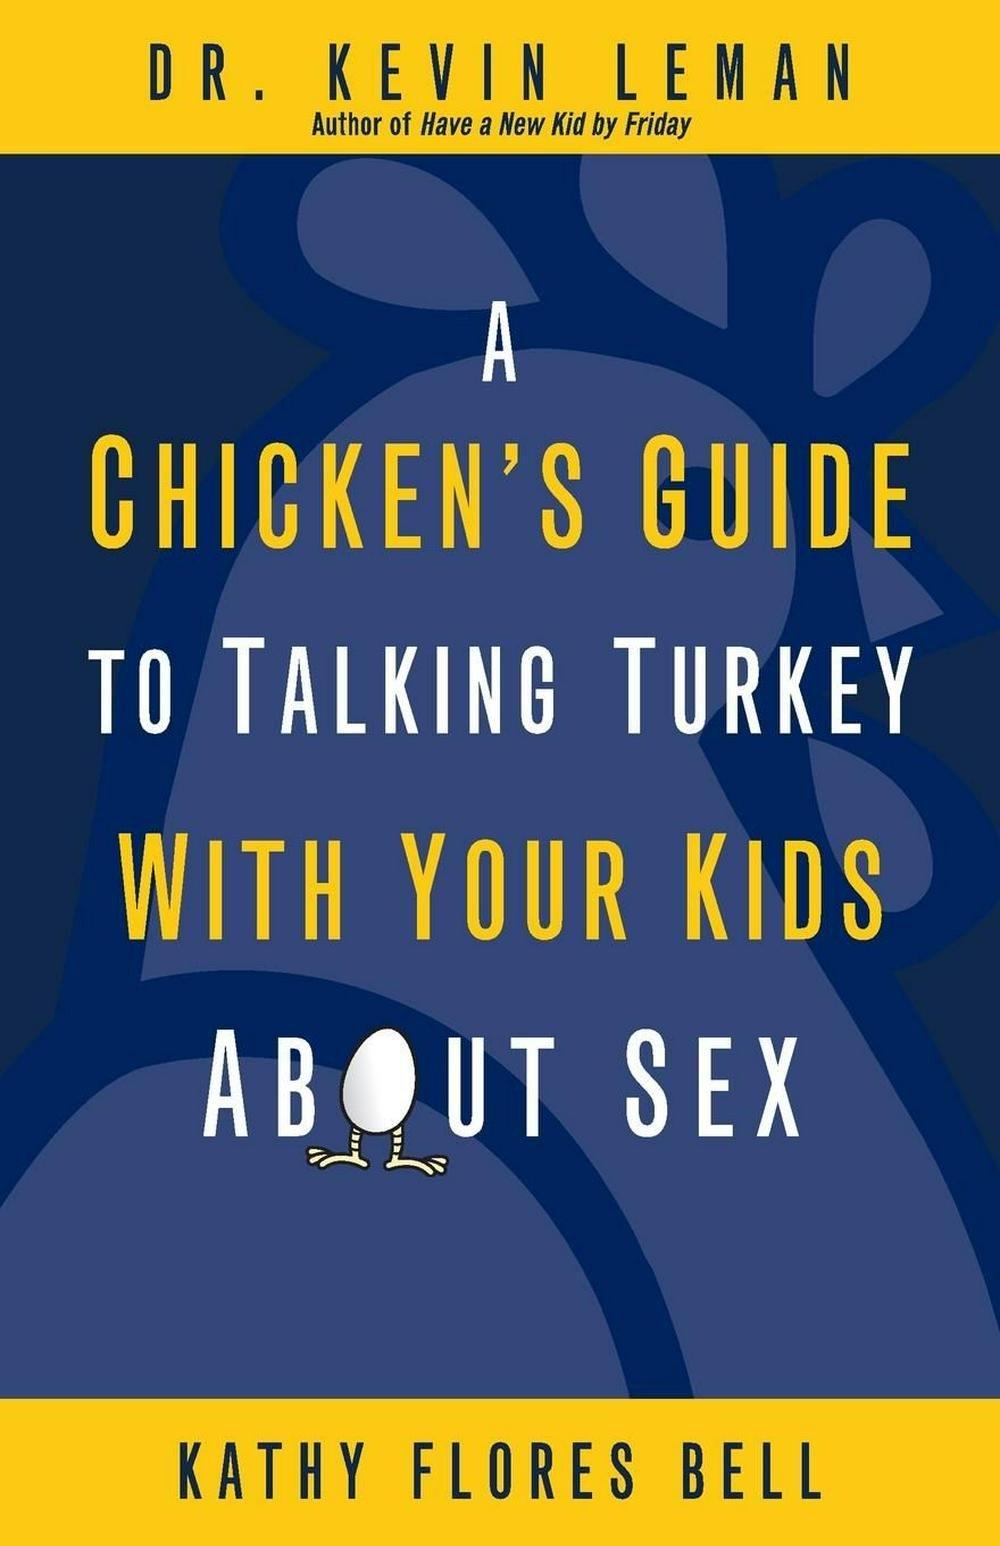 A Chicken's Guide to Talking Turkey with Your Kids About Sex by Leman, Kevin; Bell, Kathy Flores, ISBN: 9780310283508